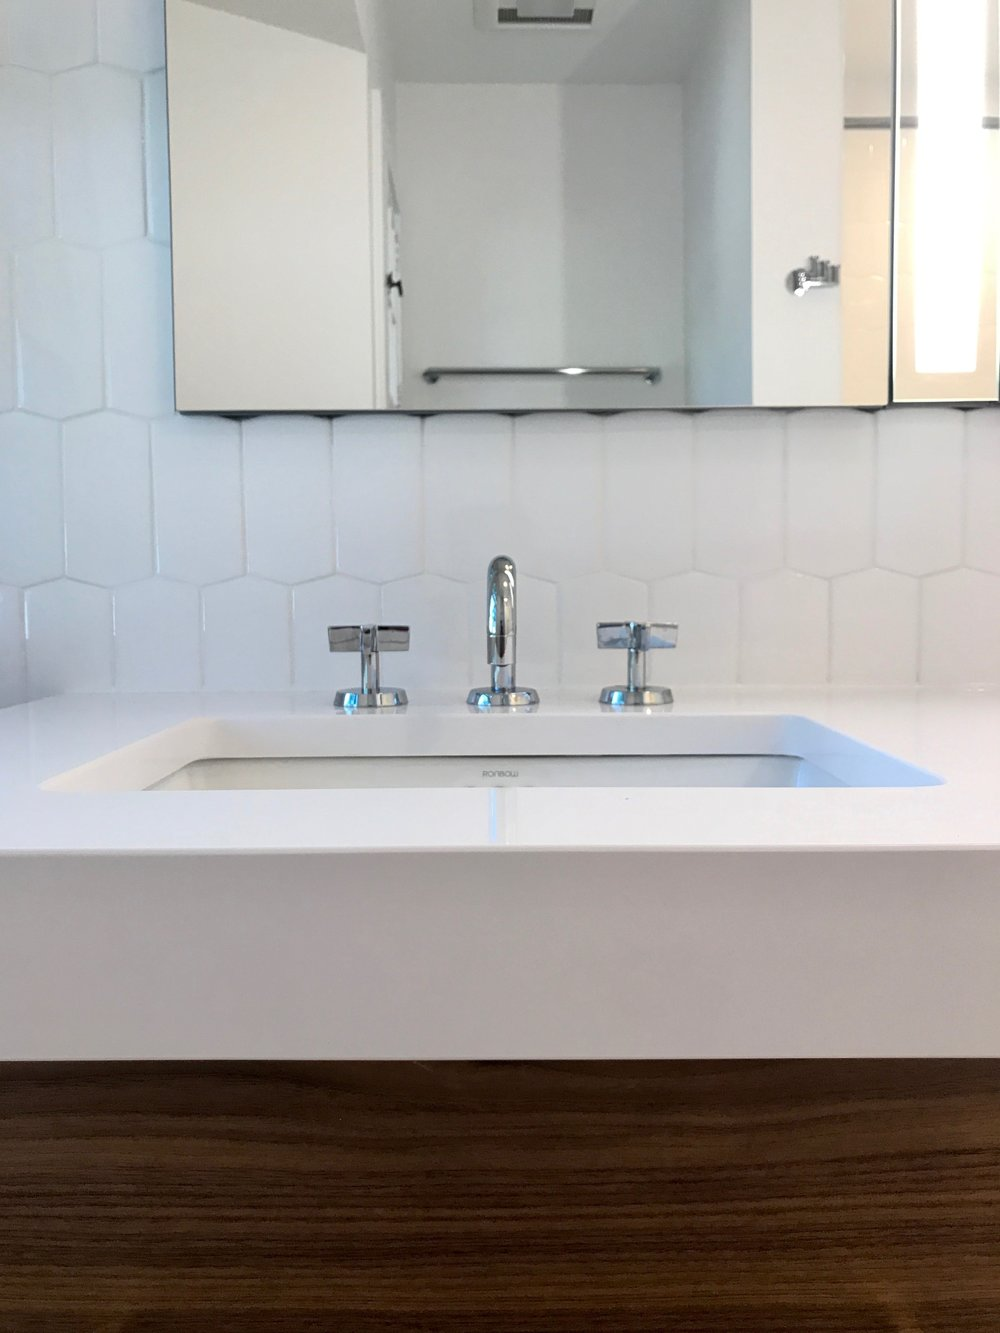 Faucets made in Brooklyn by  Watermark  and medicine cabinets from Robern. Tile from Ann Sacks. The 7 cm profile of Casesarstone white quartz complements the modern aesthetic.